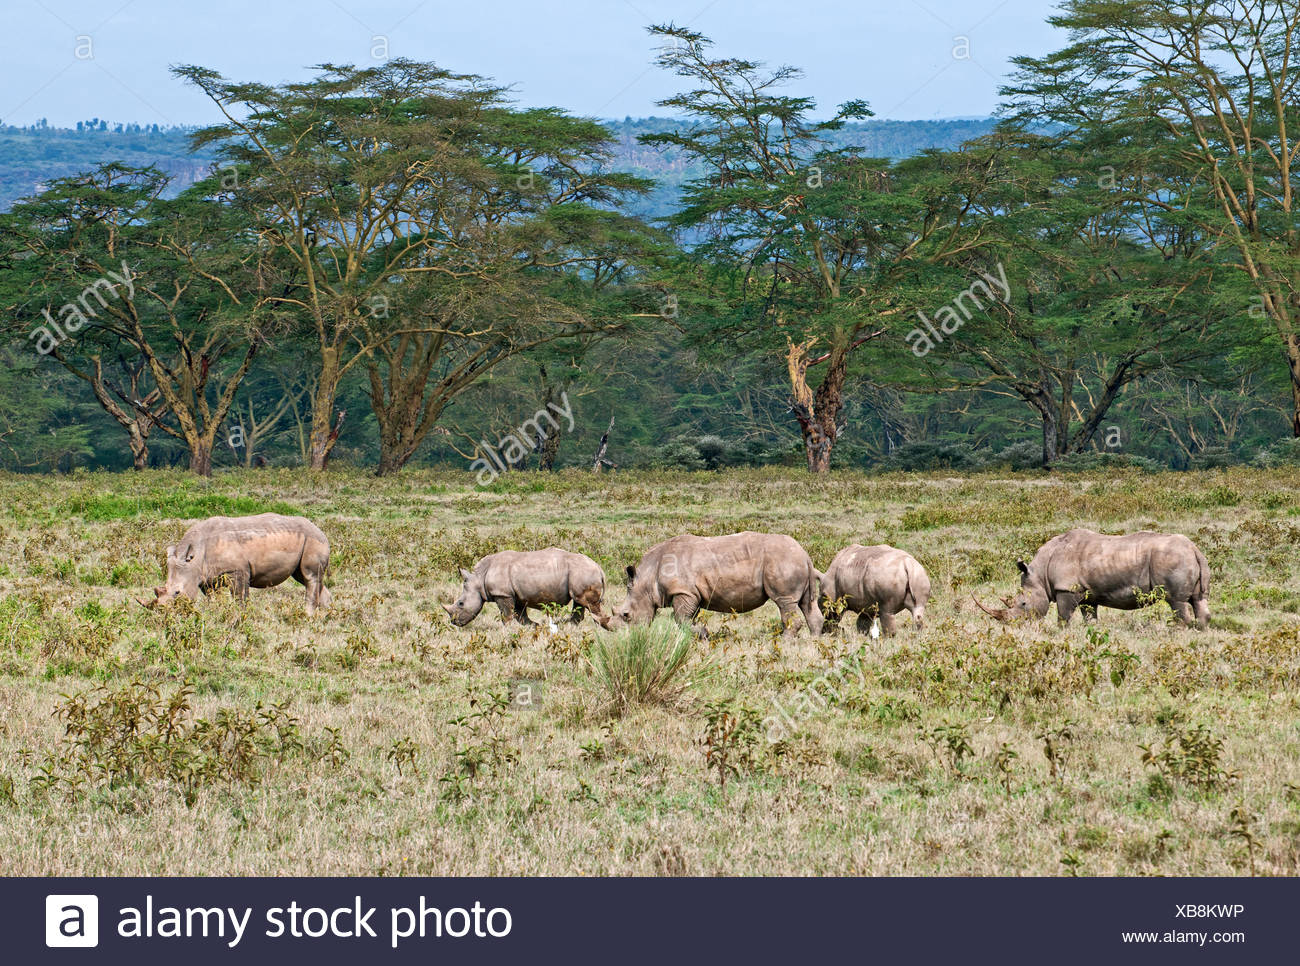 Five White rhinos grazing in grassland backed by acacia woodland in Lake Nakuru National Park Kenya East Africa - Stock Image